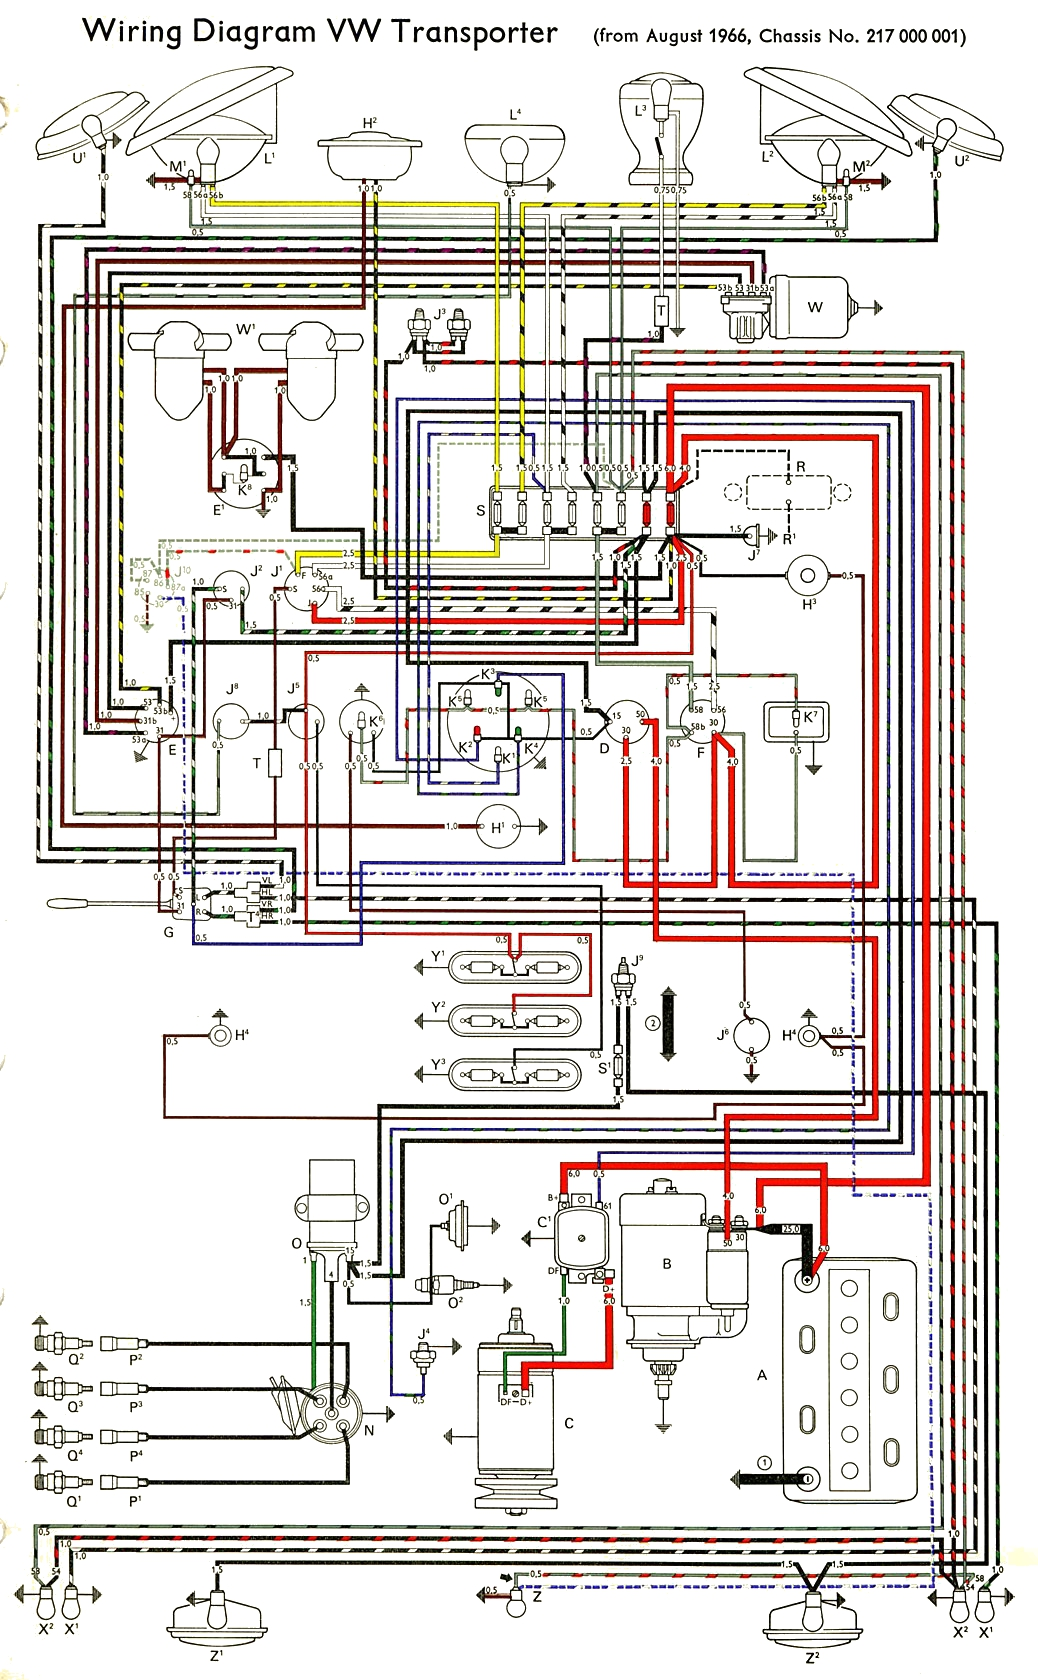 thesamba.com :: type 2 wiring diagrams wire diagram 1979 vw van #11